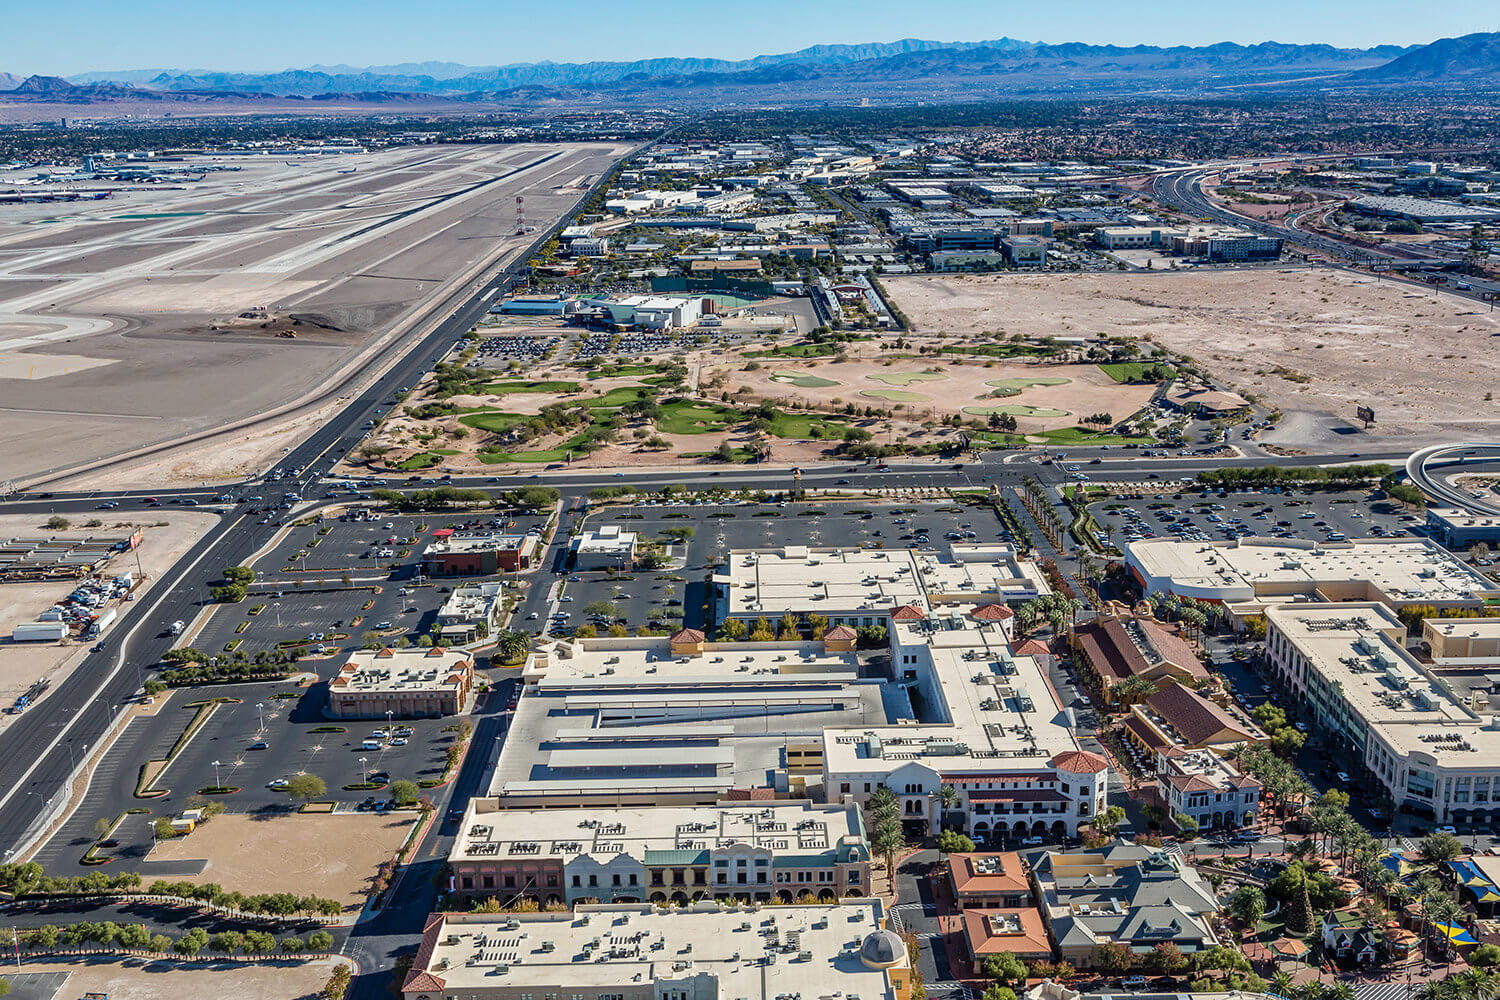 Airport-Helicopter-Aerial-Photography-001